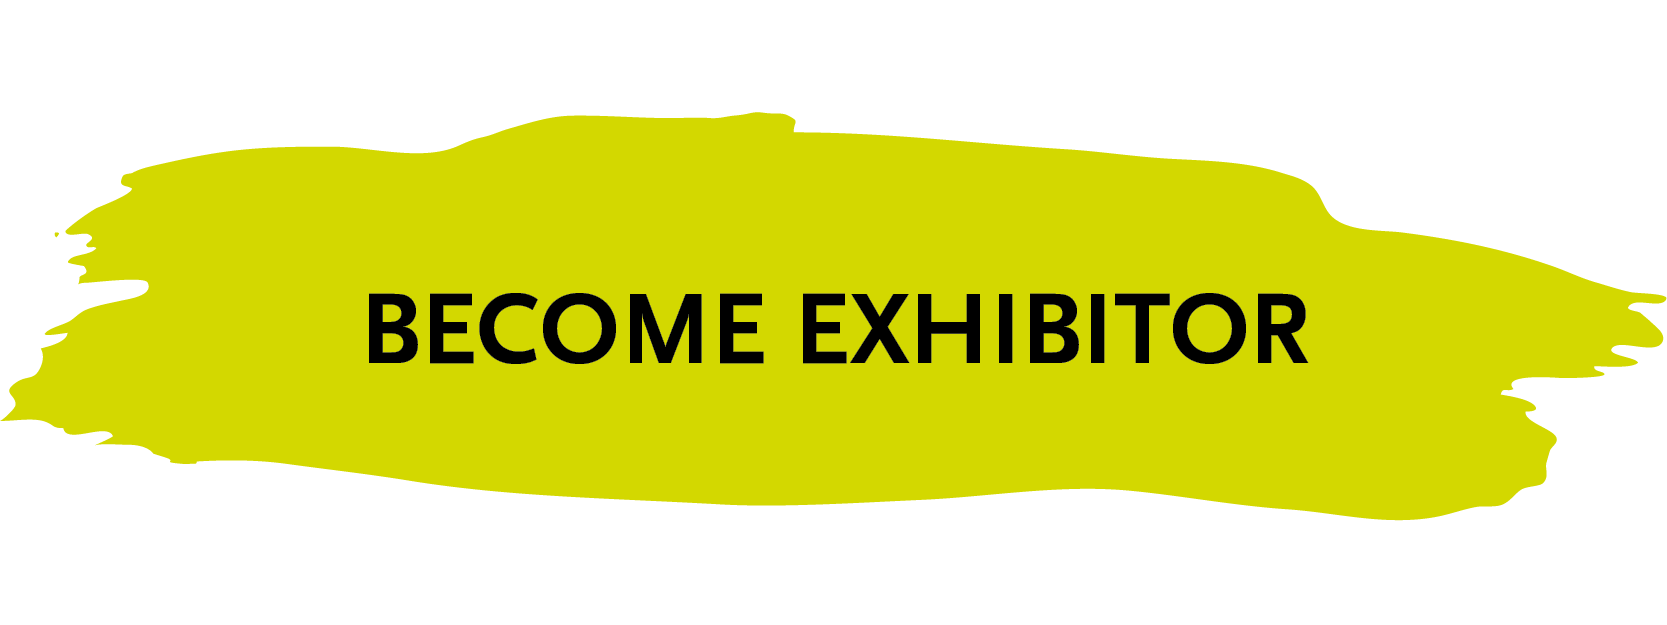 Vlek - become exhibitor.png